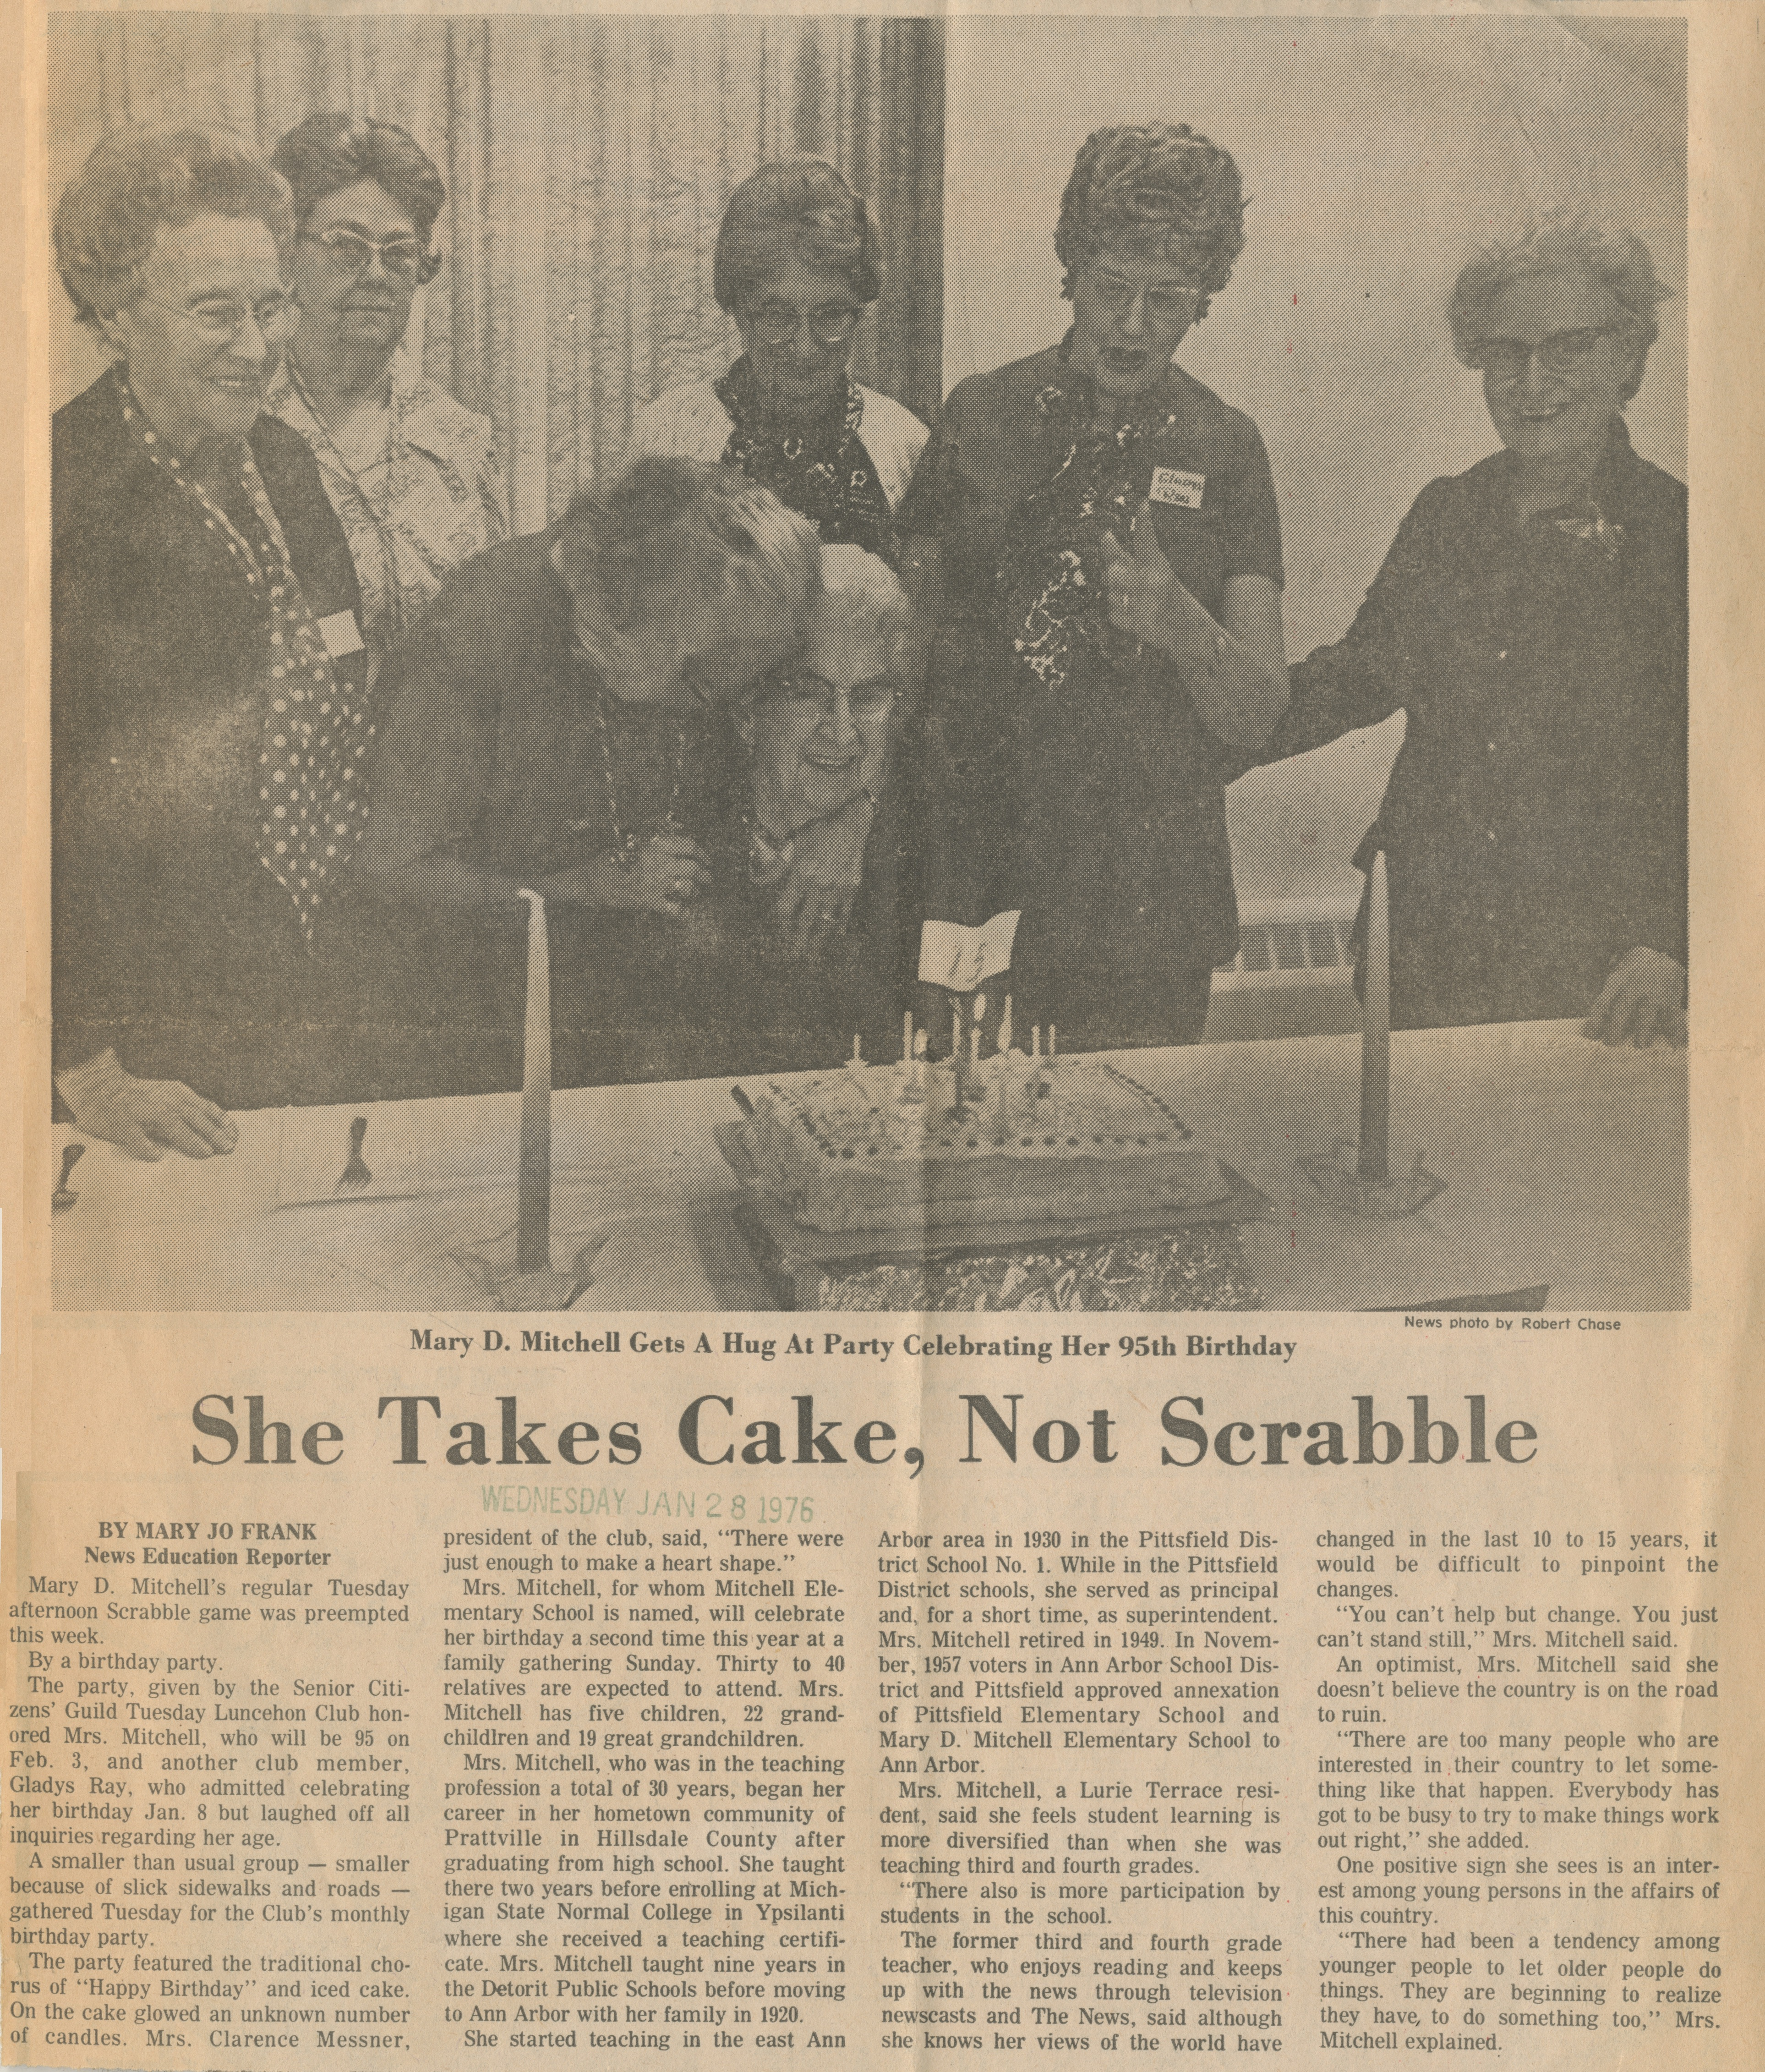 She Takes Cake, Not Scrabble image